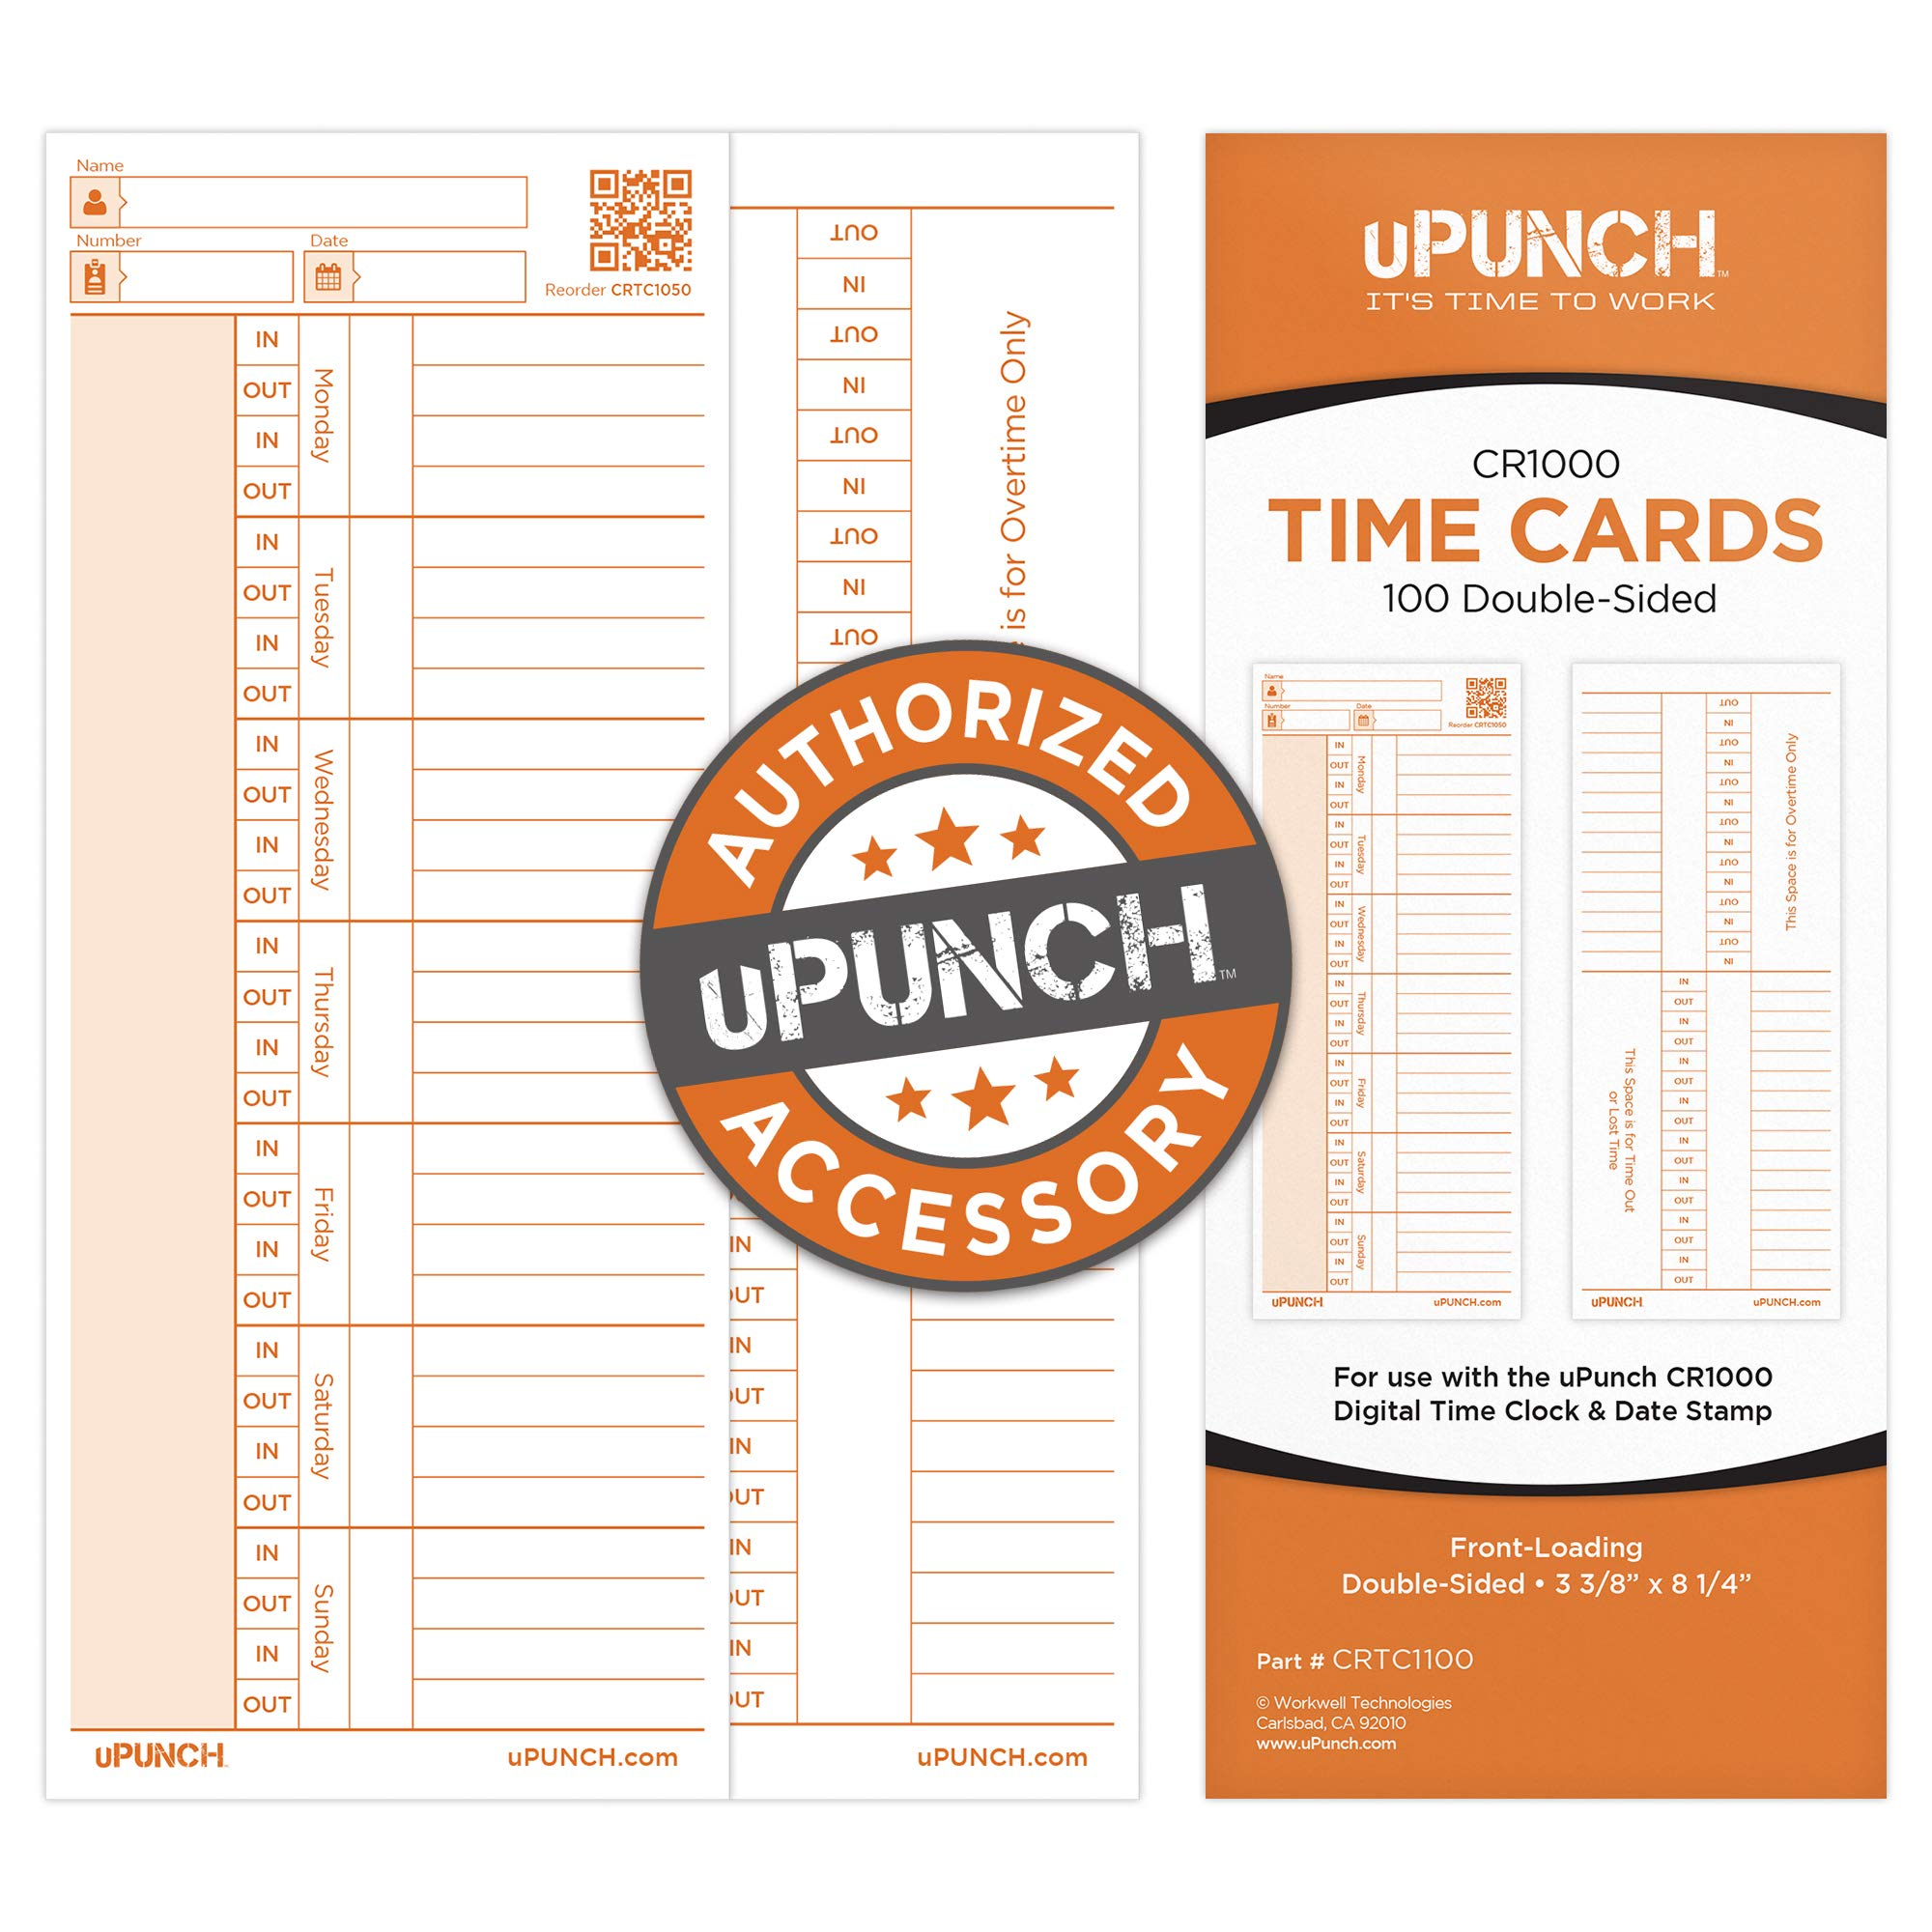 100 uPunch Time Cards for CR1000 Digital Time Clock & Date Stamp